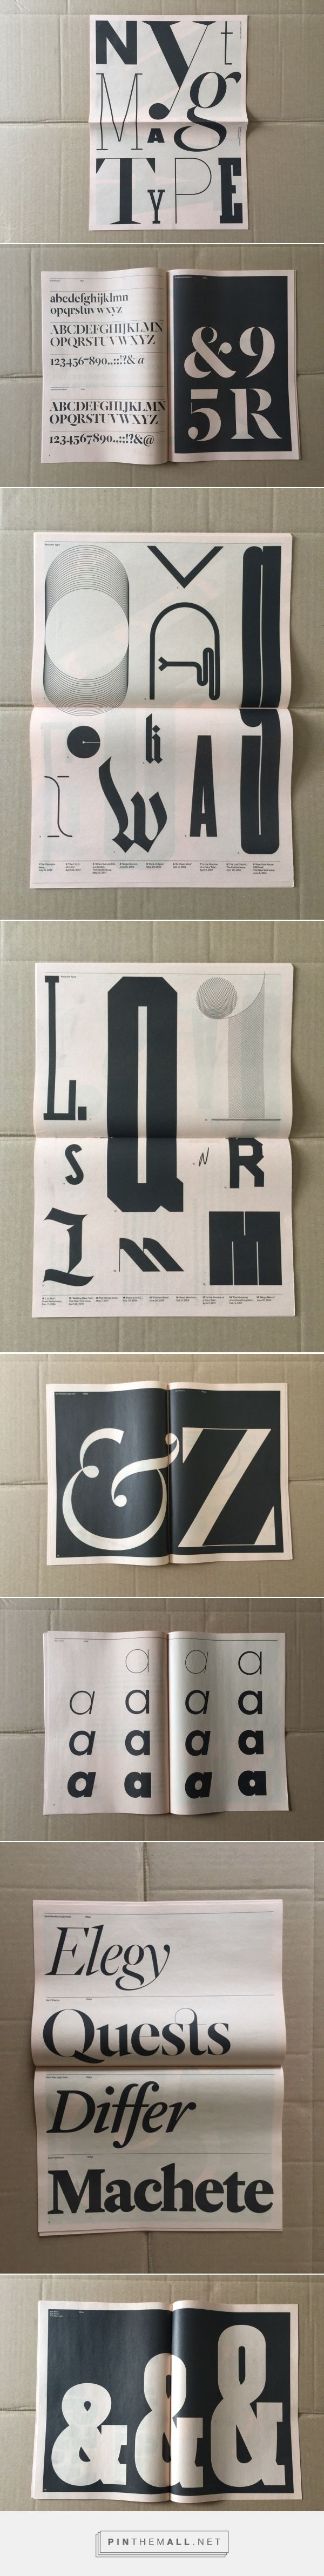 New York Times Magazine celebrates bespoke type in new show and publication - Creative Review... - a grouped images picture - Pin Them All